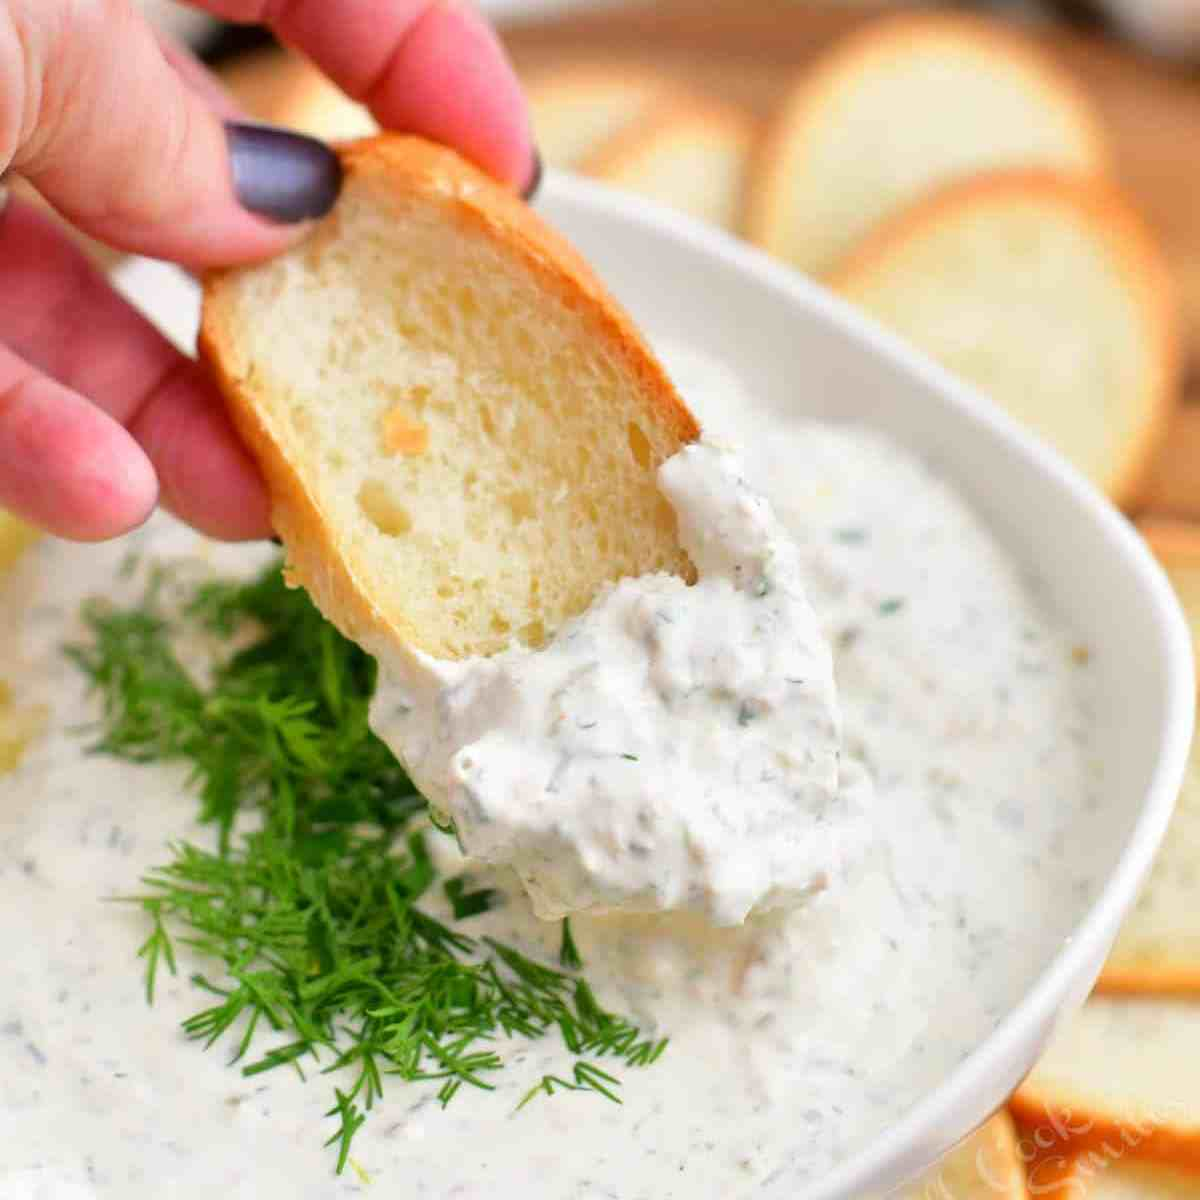 close up image: dipping toasted bread into bowl with salmon cream cheese dip